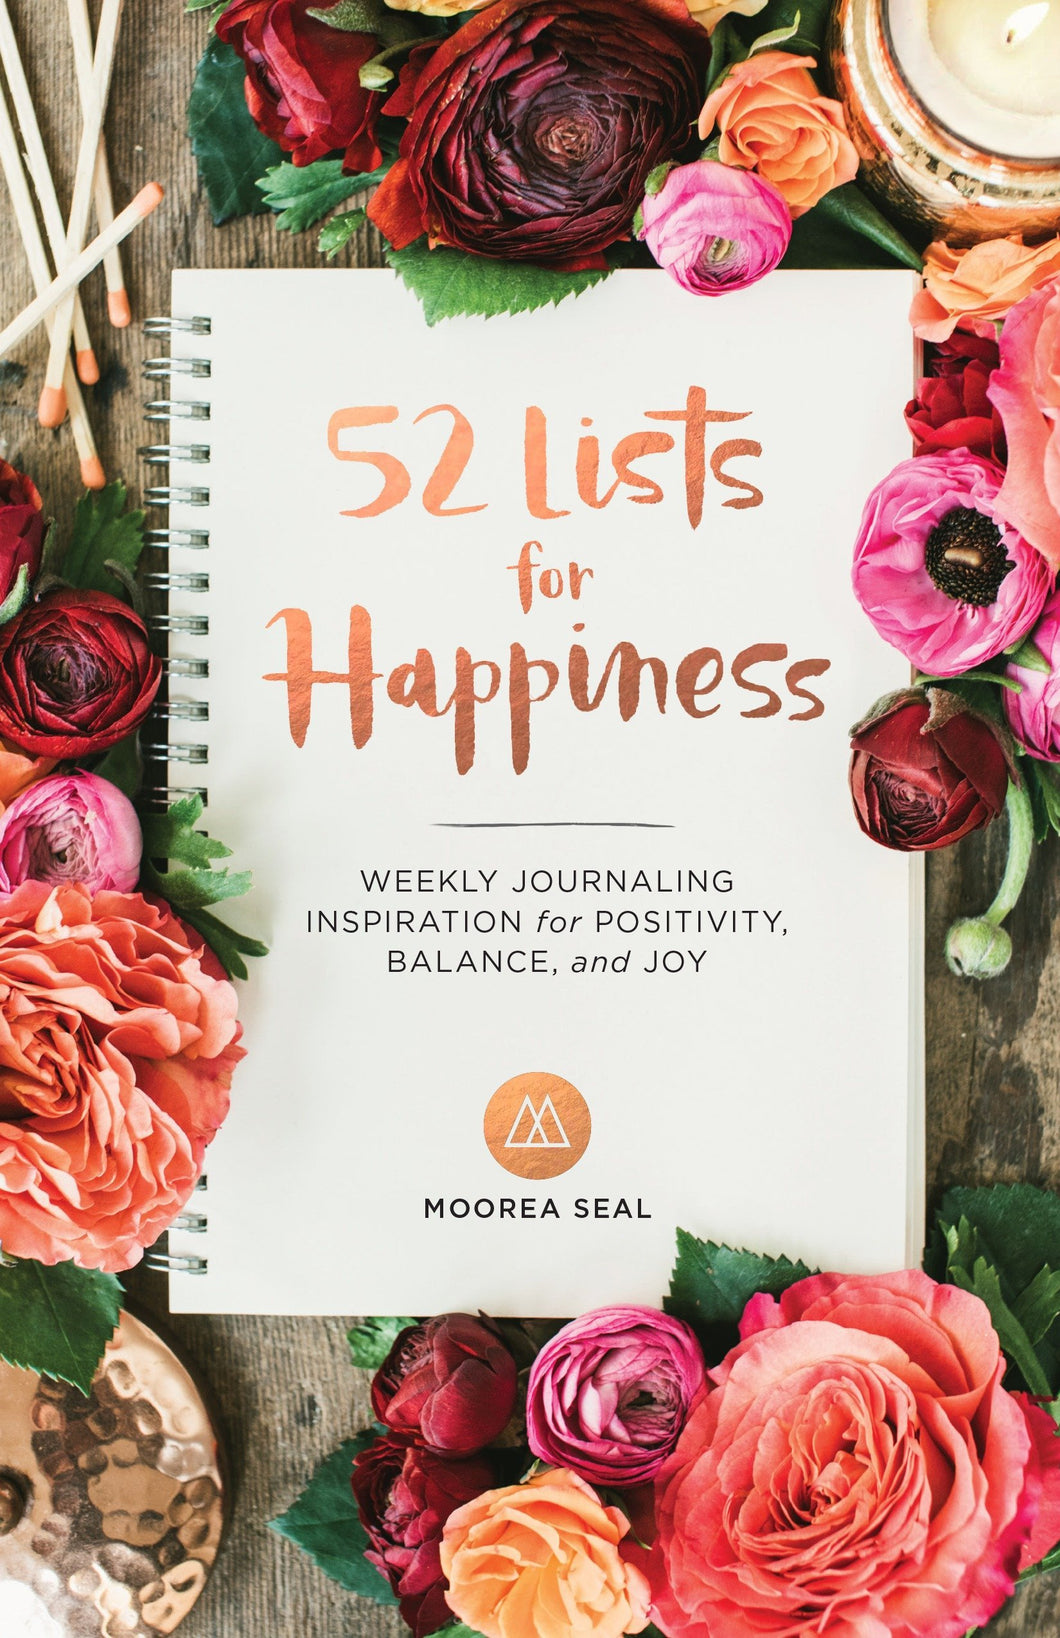 52 Lists for Happiness: Weekly Journaling Inspiration for Positivity, Balance, and Joy - MINDFUL ZEBRA